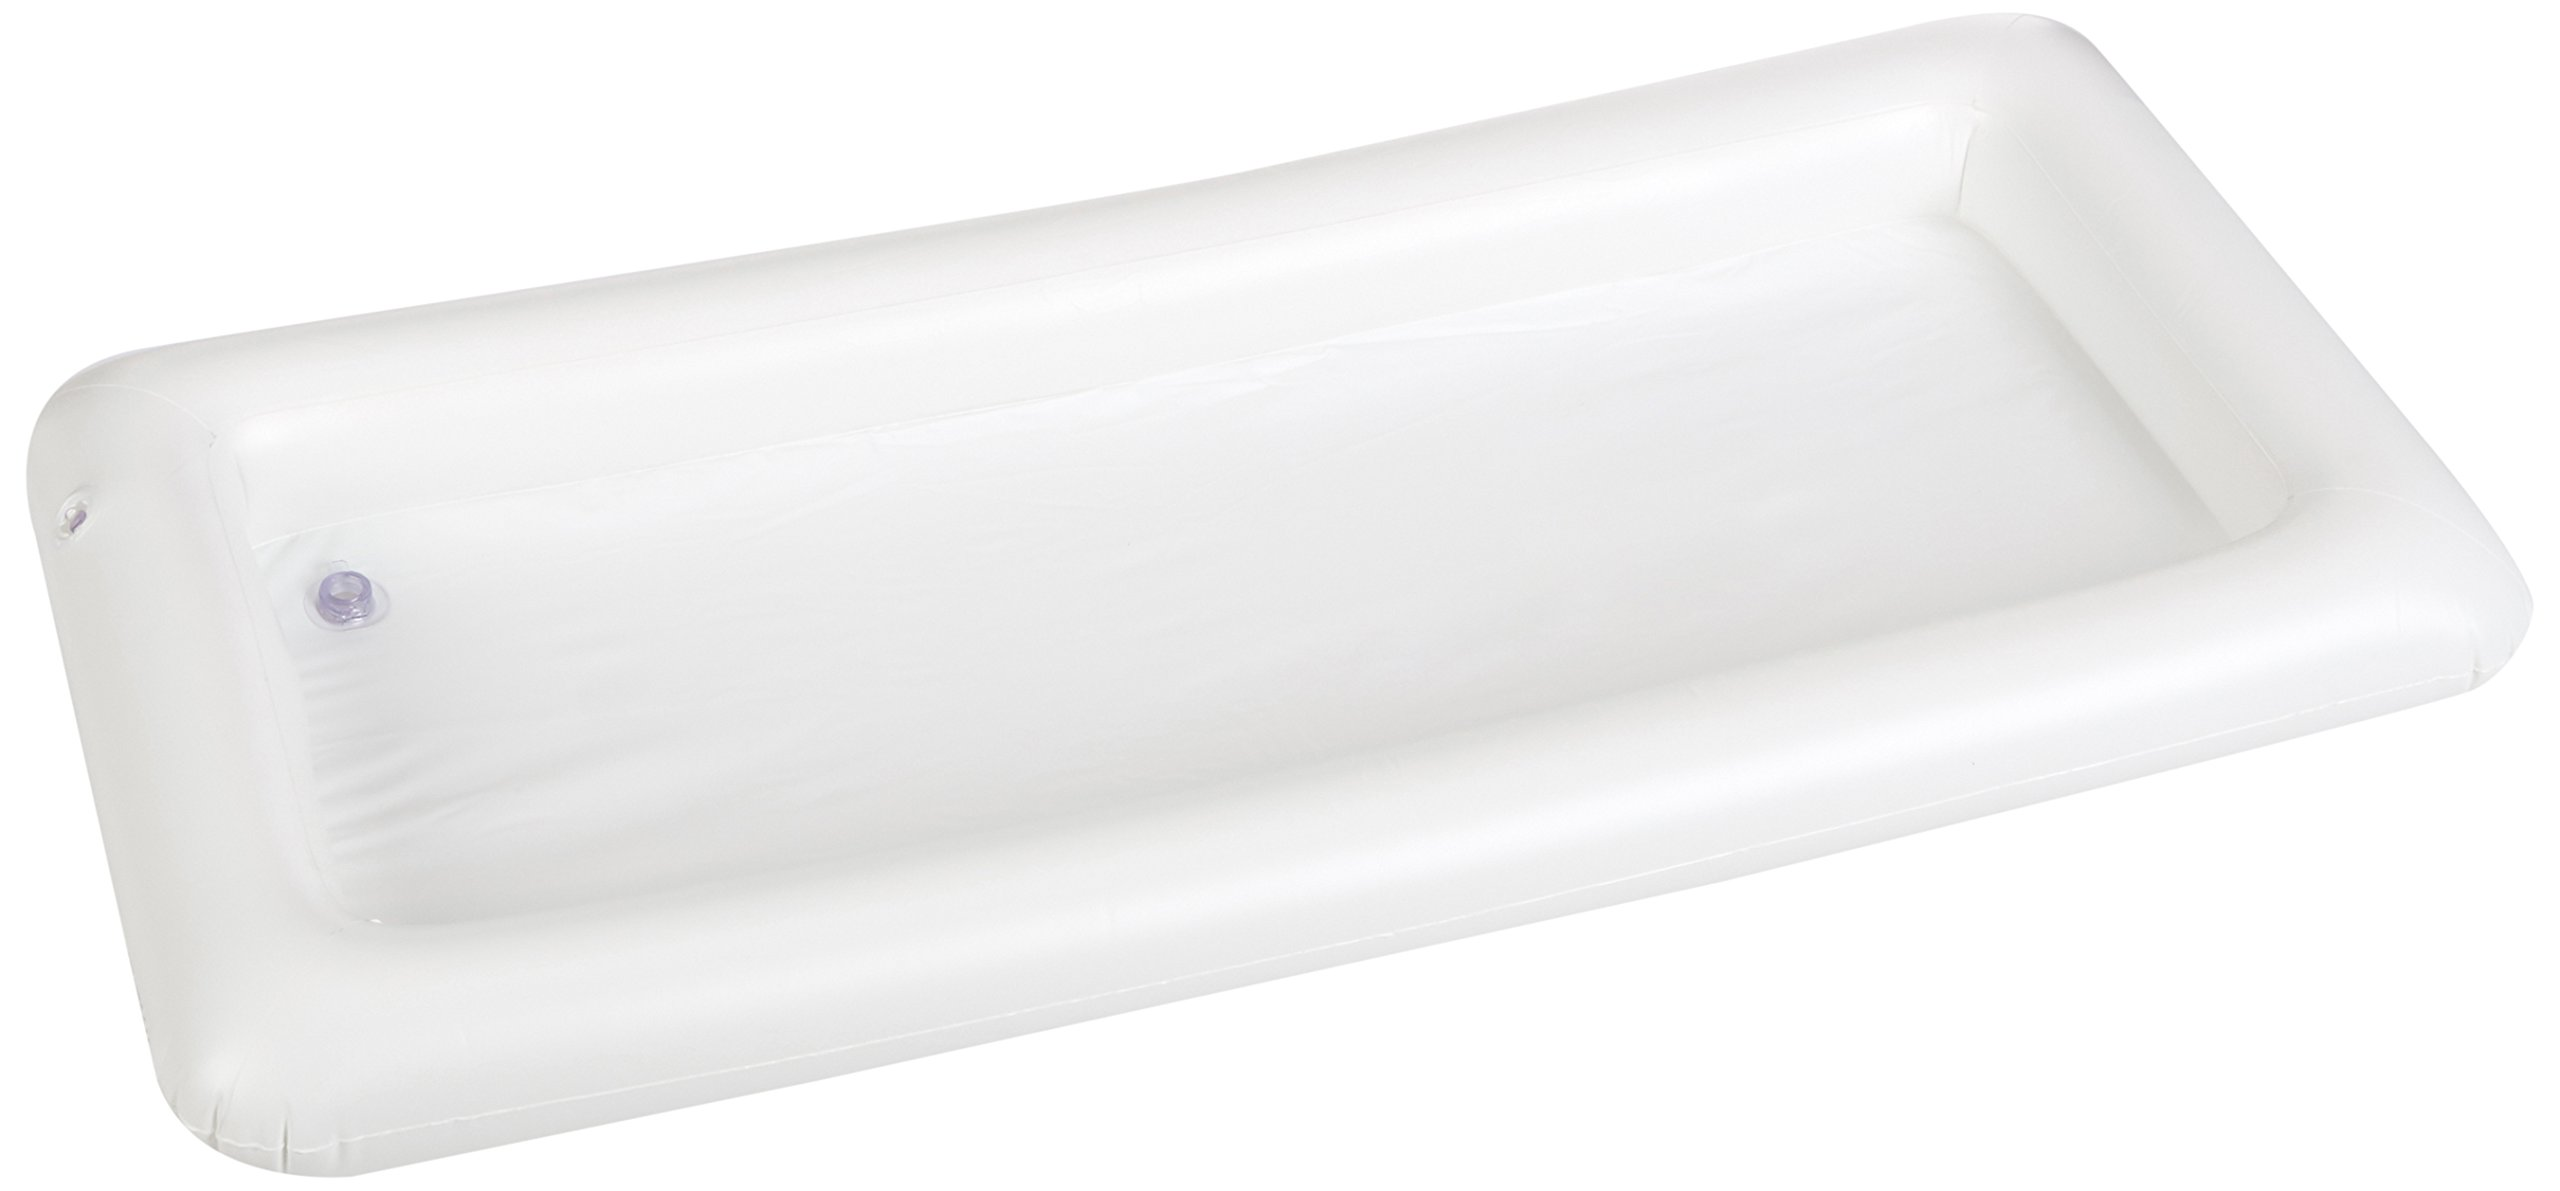 Greenco Inflatable Buffet and Salad Serving Bar With Drain Plug- White by Greenco